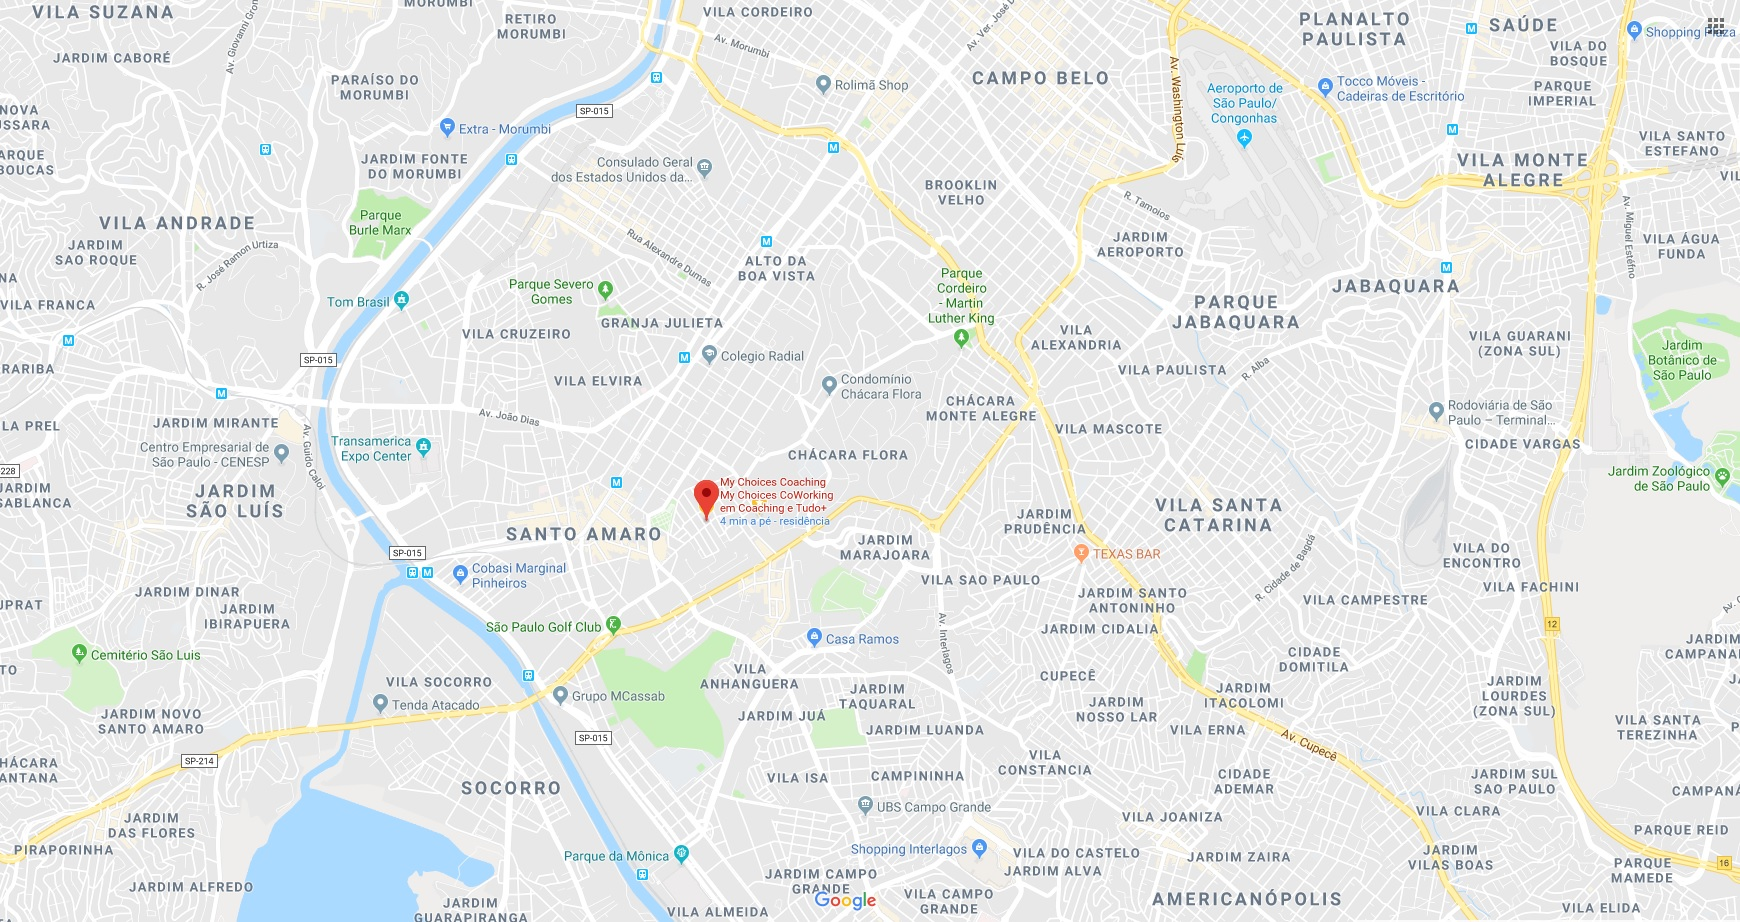 MAPS My Choices Coworking e Coaching